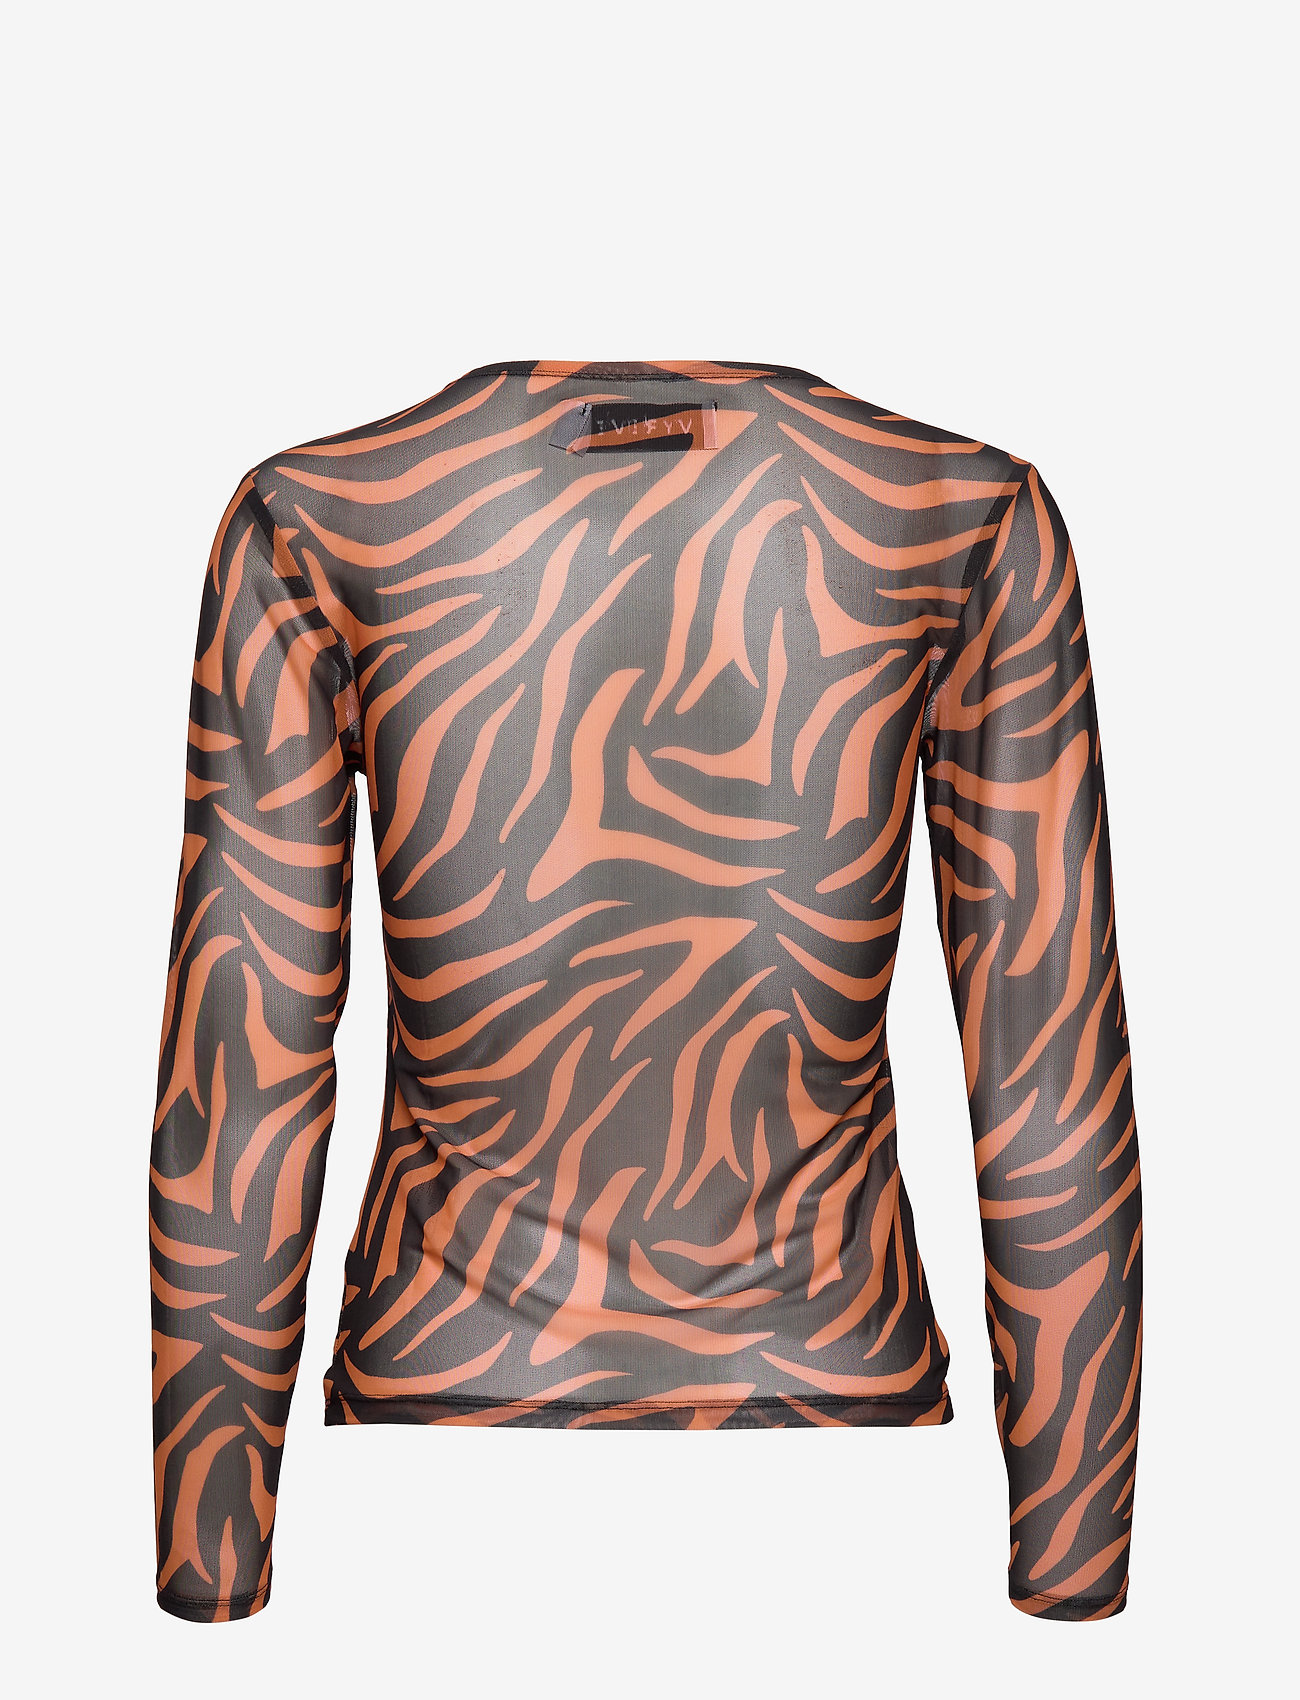 Ivyrevel - MESH LONG SLEEVE TOP - hauts à manches longues - black/orange zebra - 1